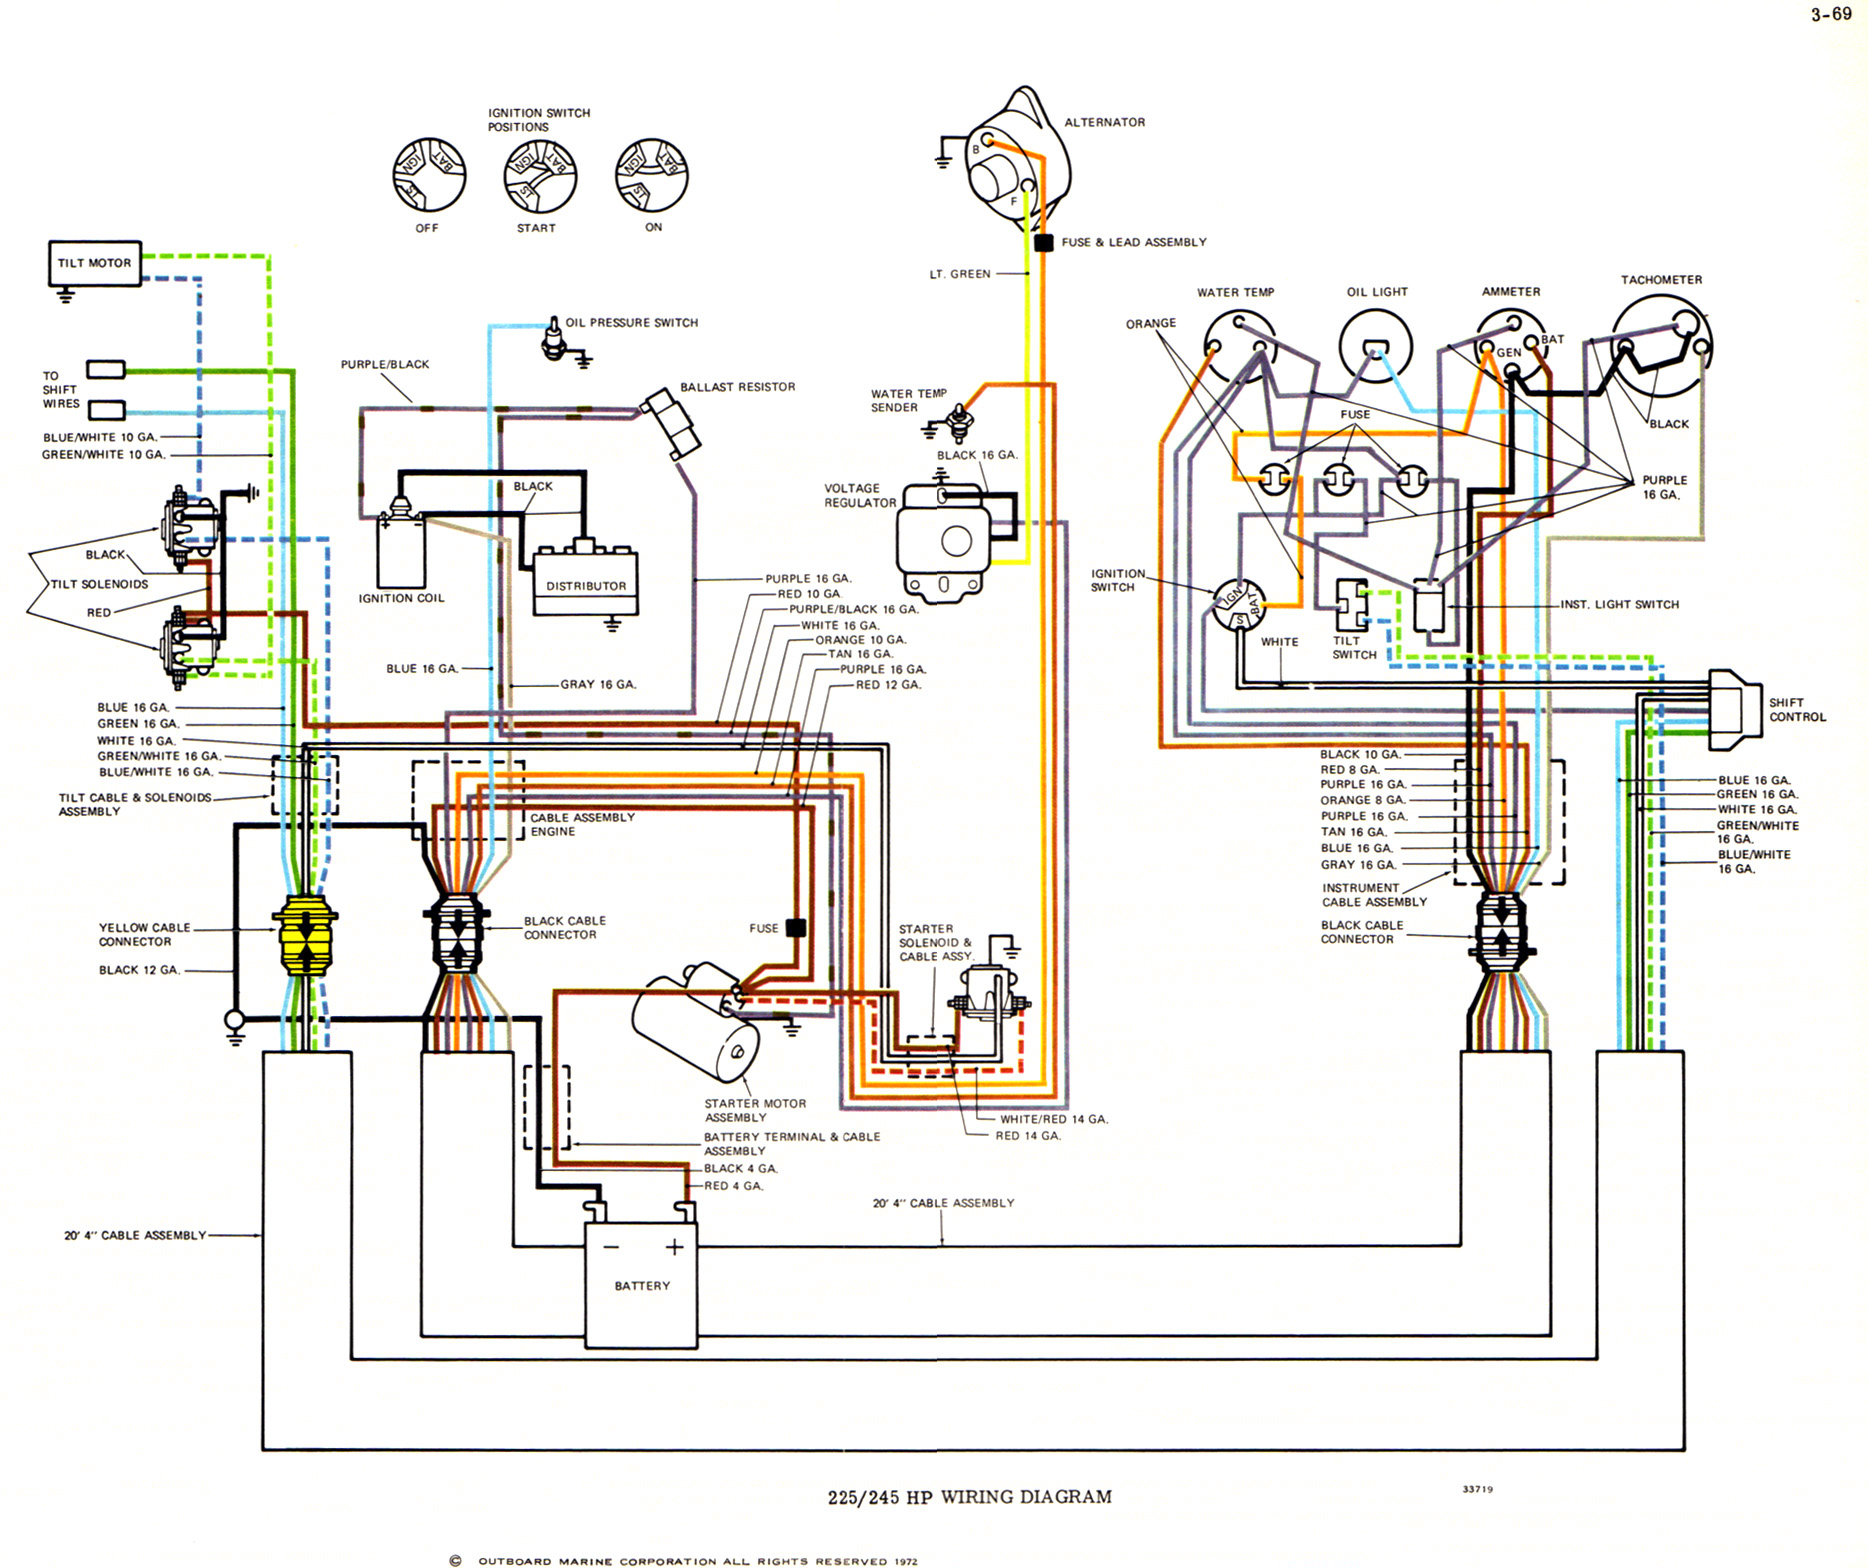 hight resolution of omc wiring diagram